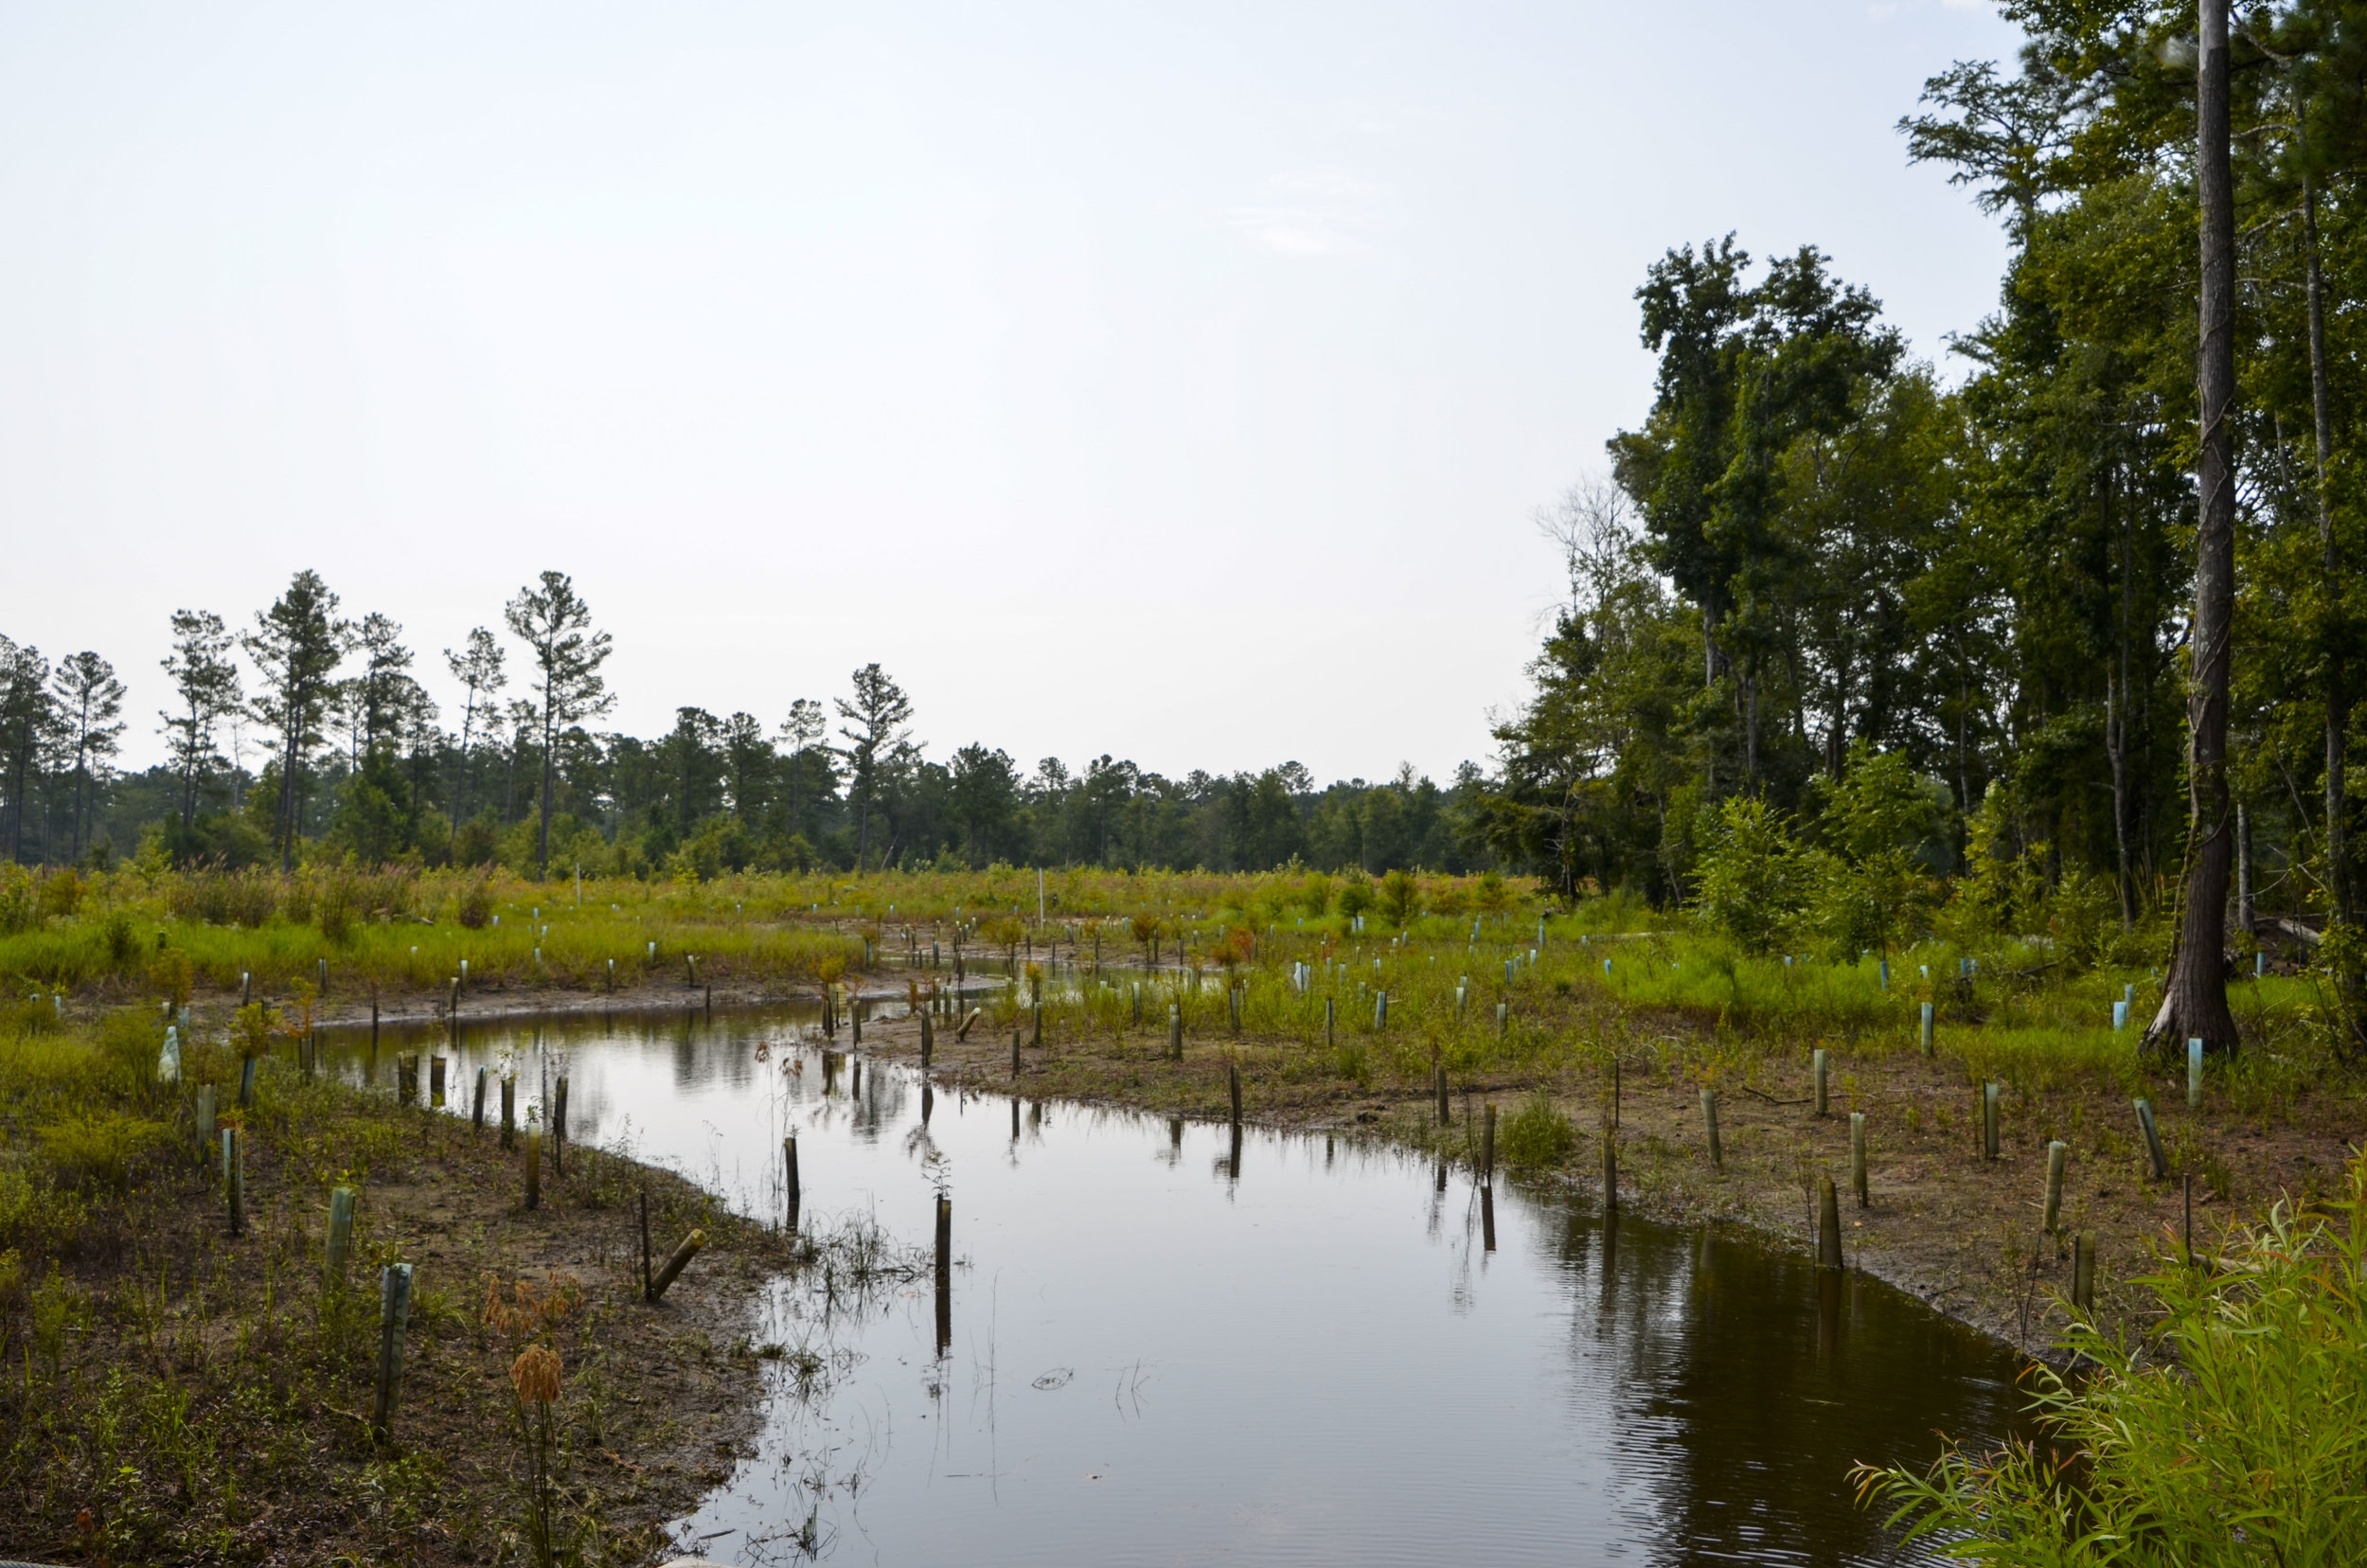 Cypress trees planted along the streambed at the Carter Stilly mitigation ban area at WRHP & WMA.